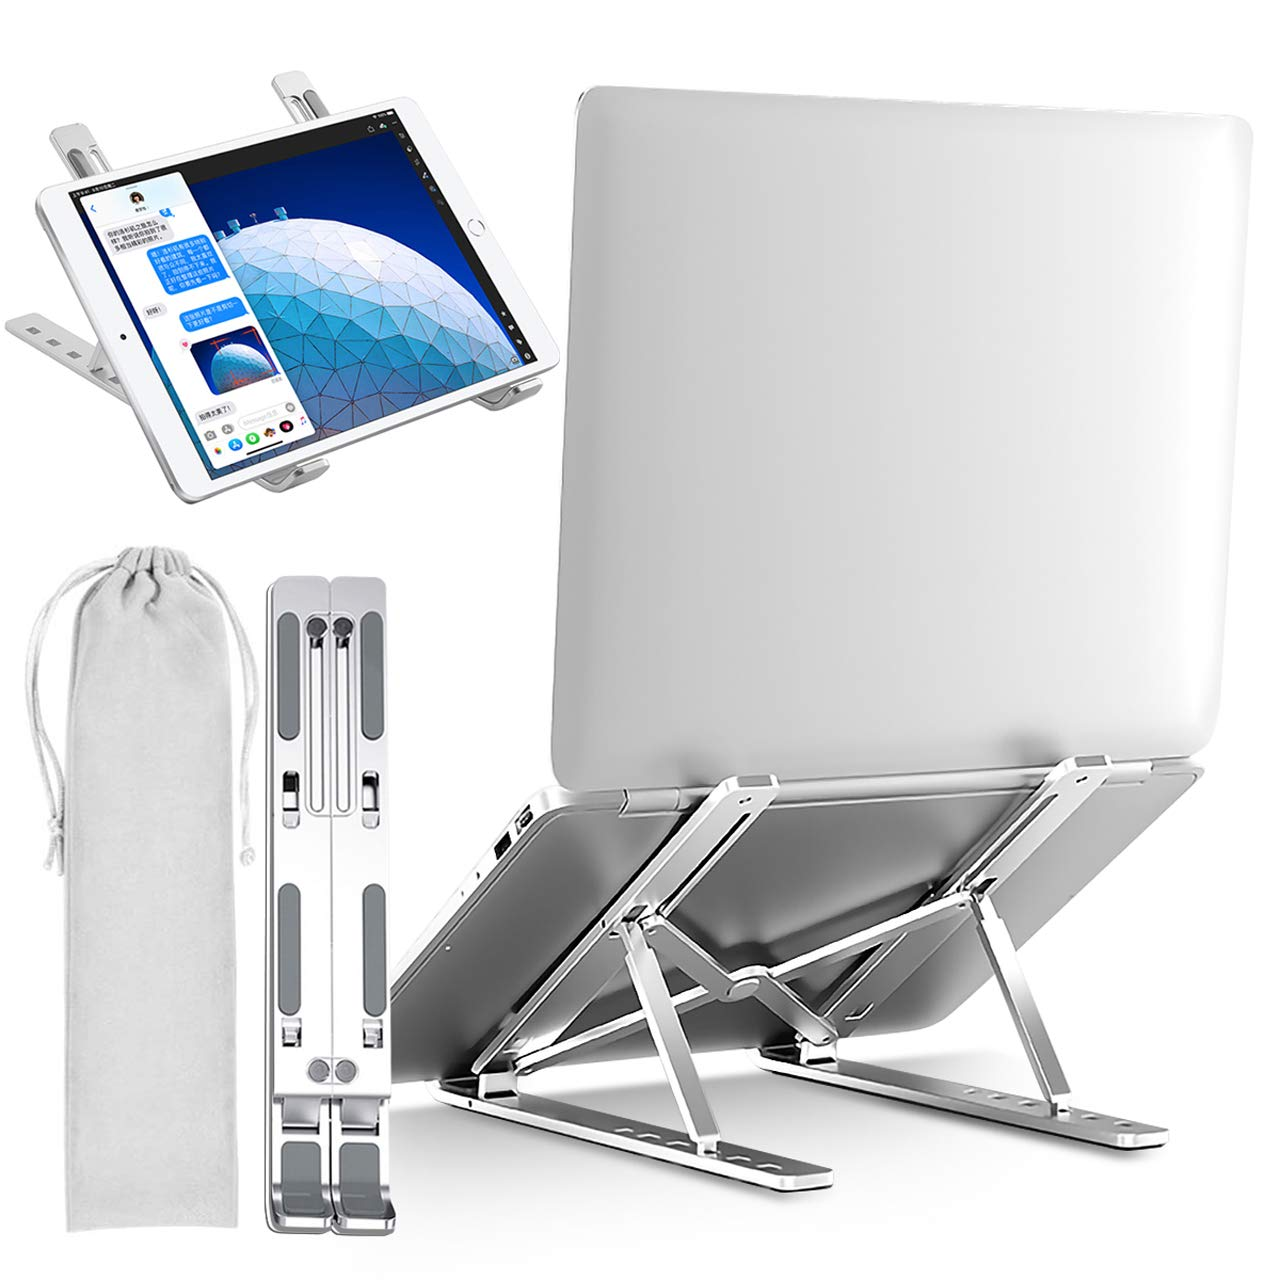 """KwuLee Portable Laptop Stand Multi-Angle Foldable Tablet Computer Holder 6-Height Adjustment Laptops Riser Support for 10-15.6""""Universal Notebook (Silver)"""